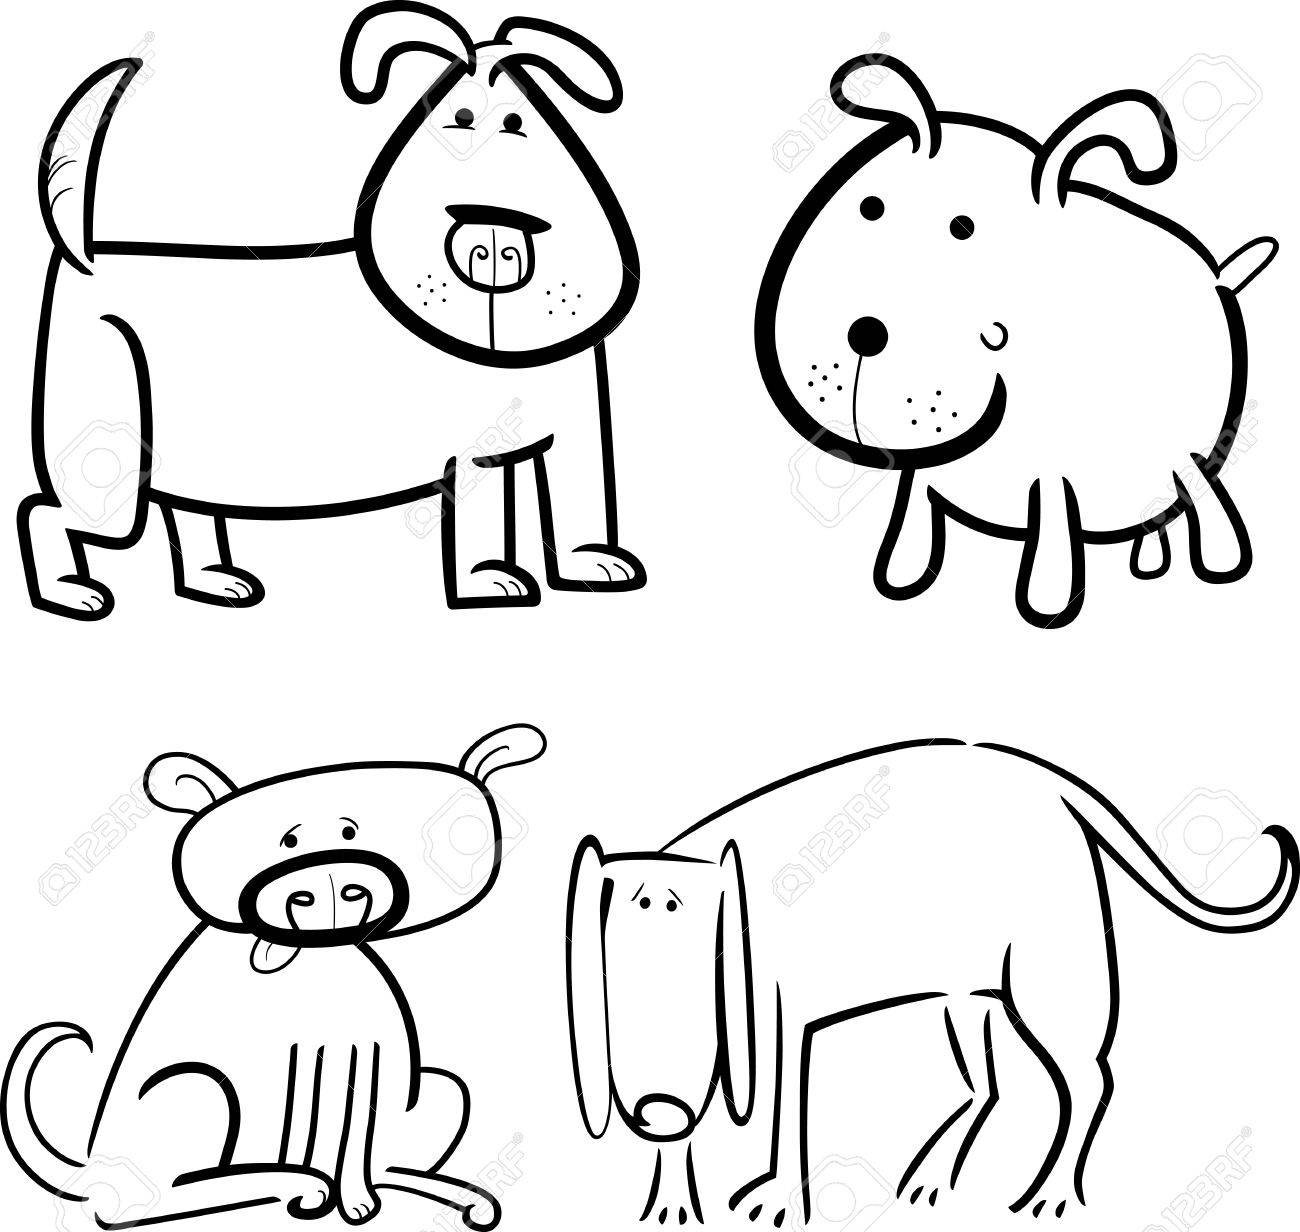 cartoon illustration of four cute dogs or puppies set for coloring